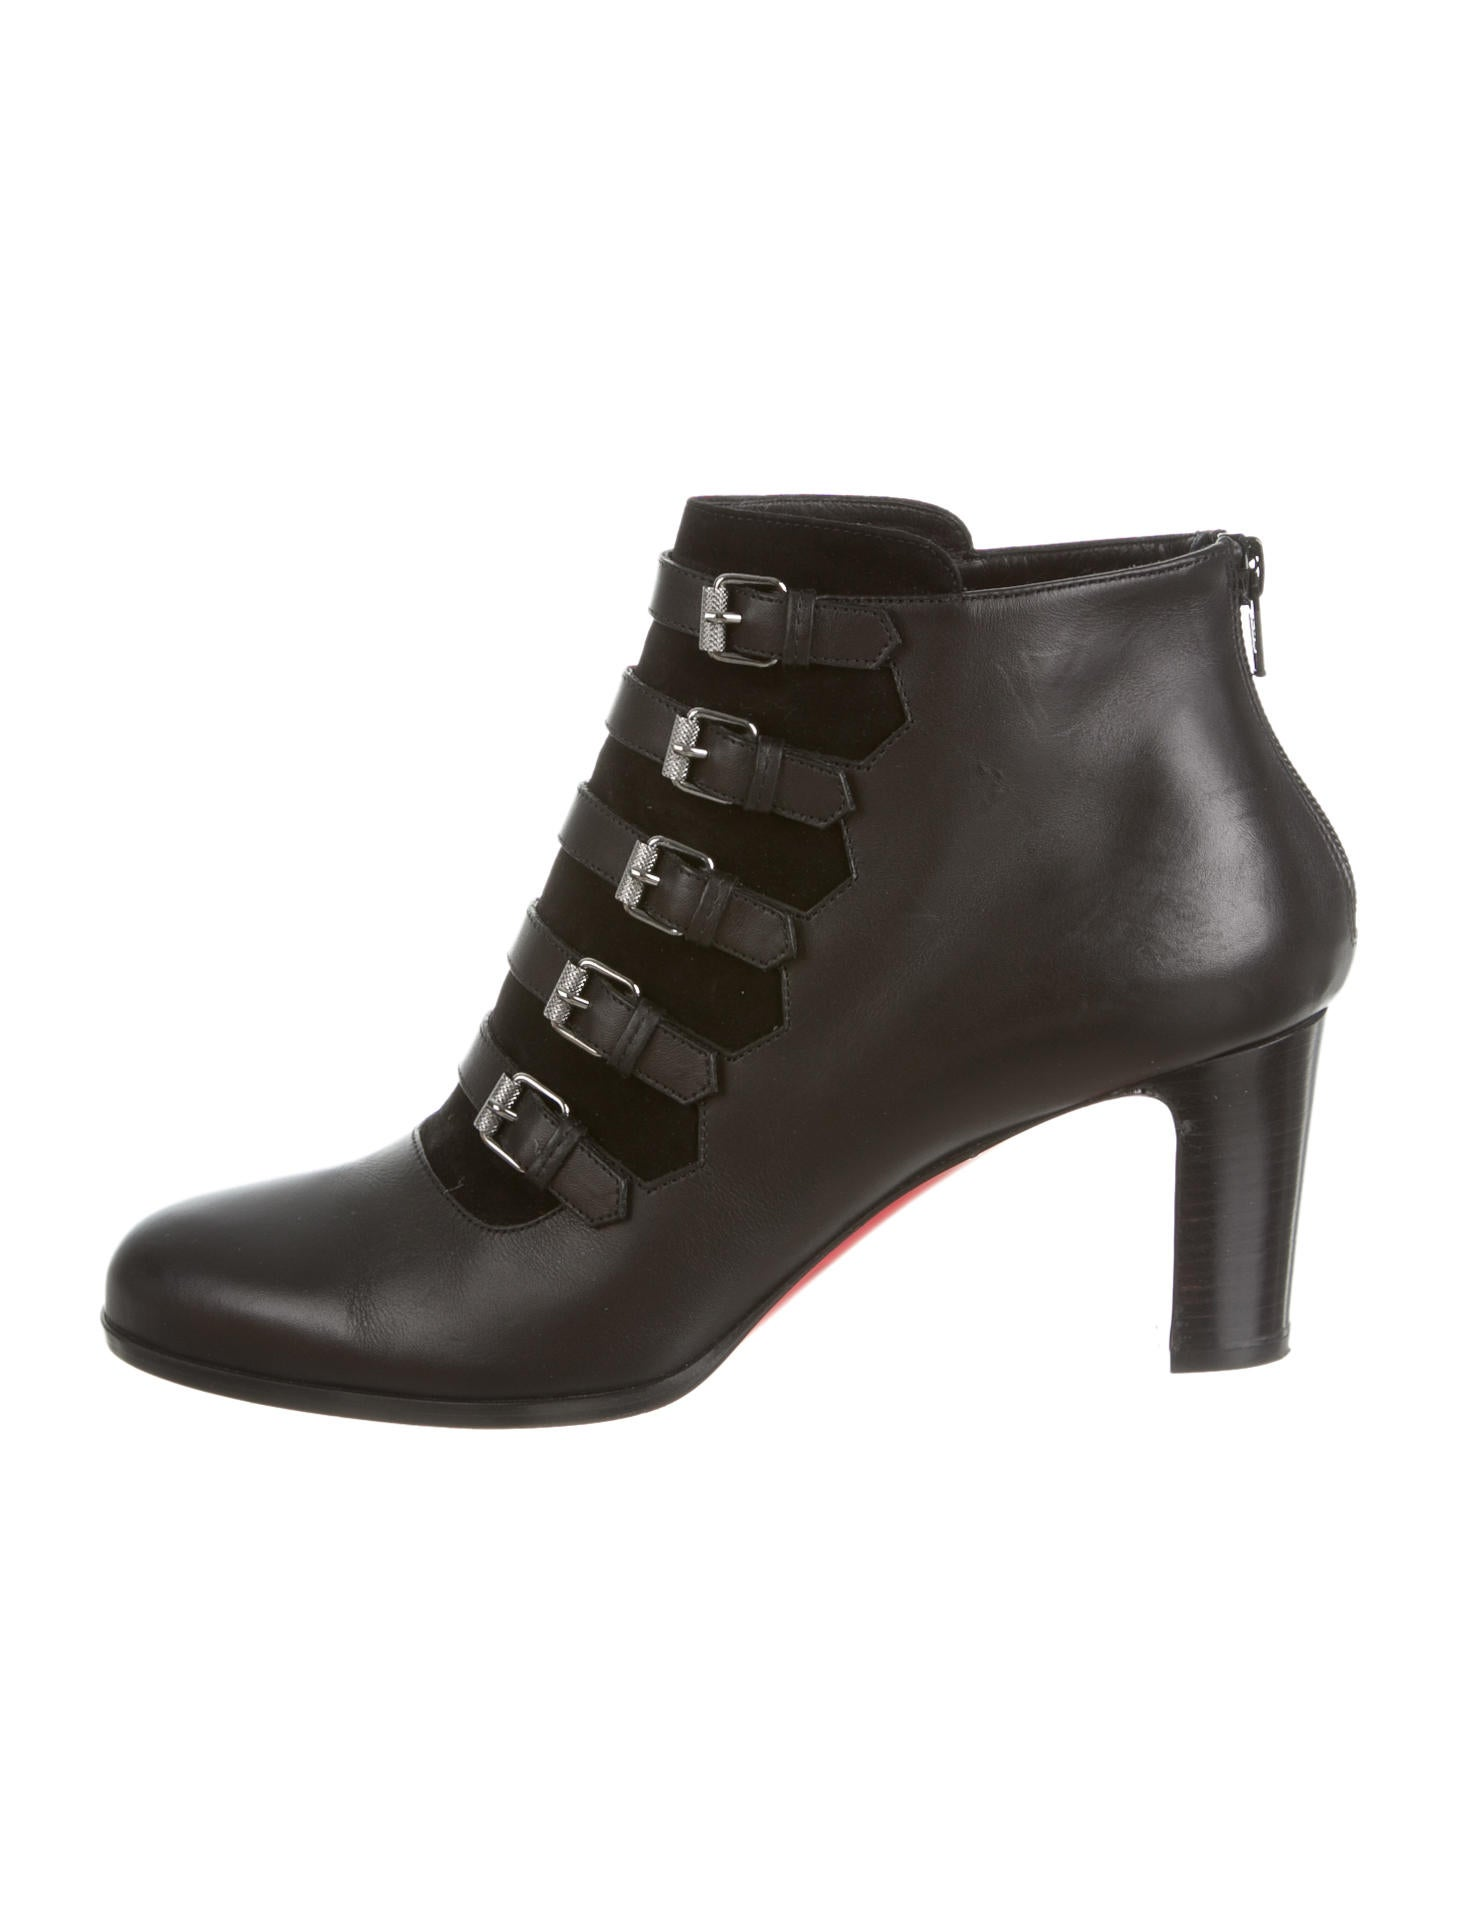 christian louboutin semi-pointed toe ankle boots Black leather ...